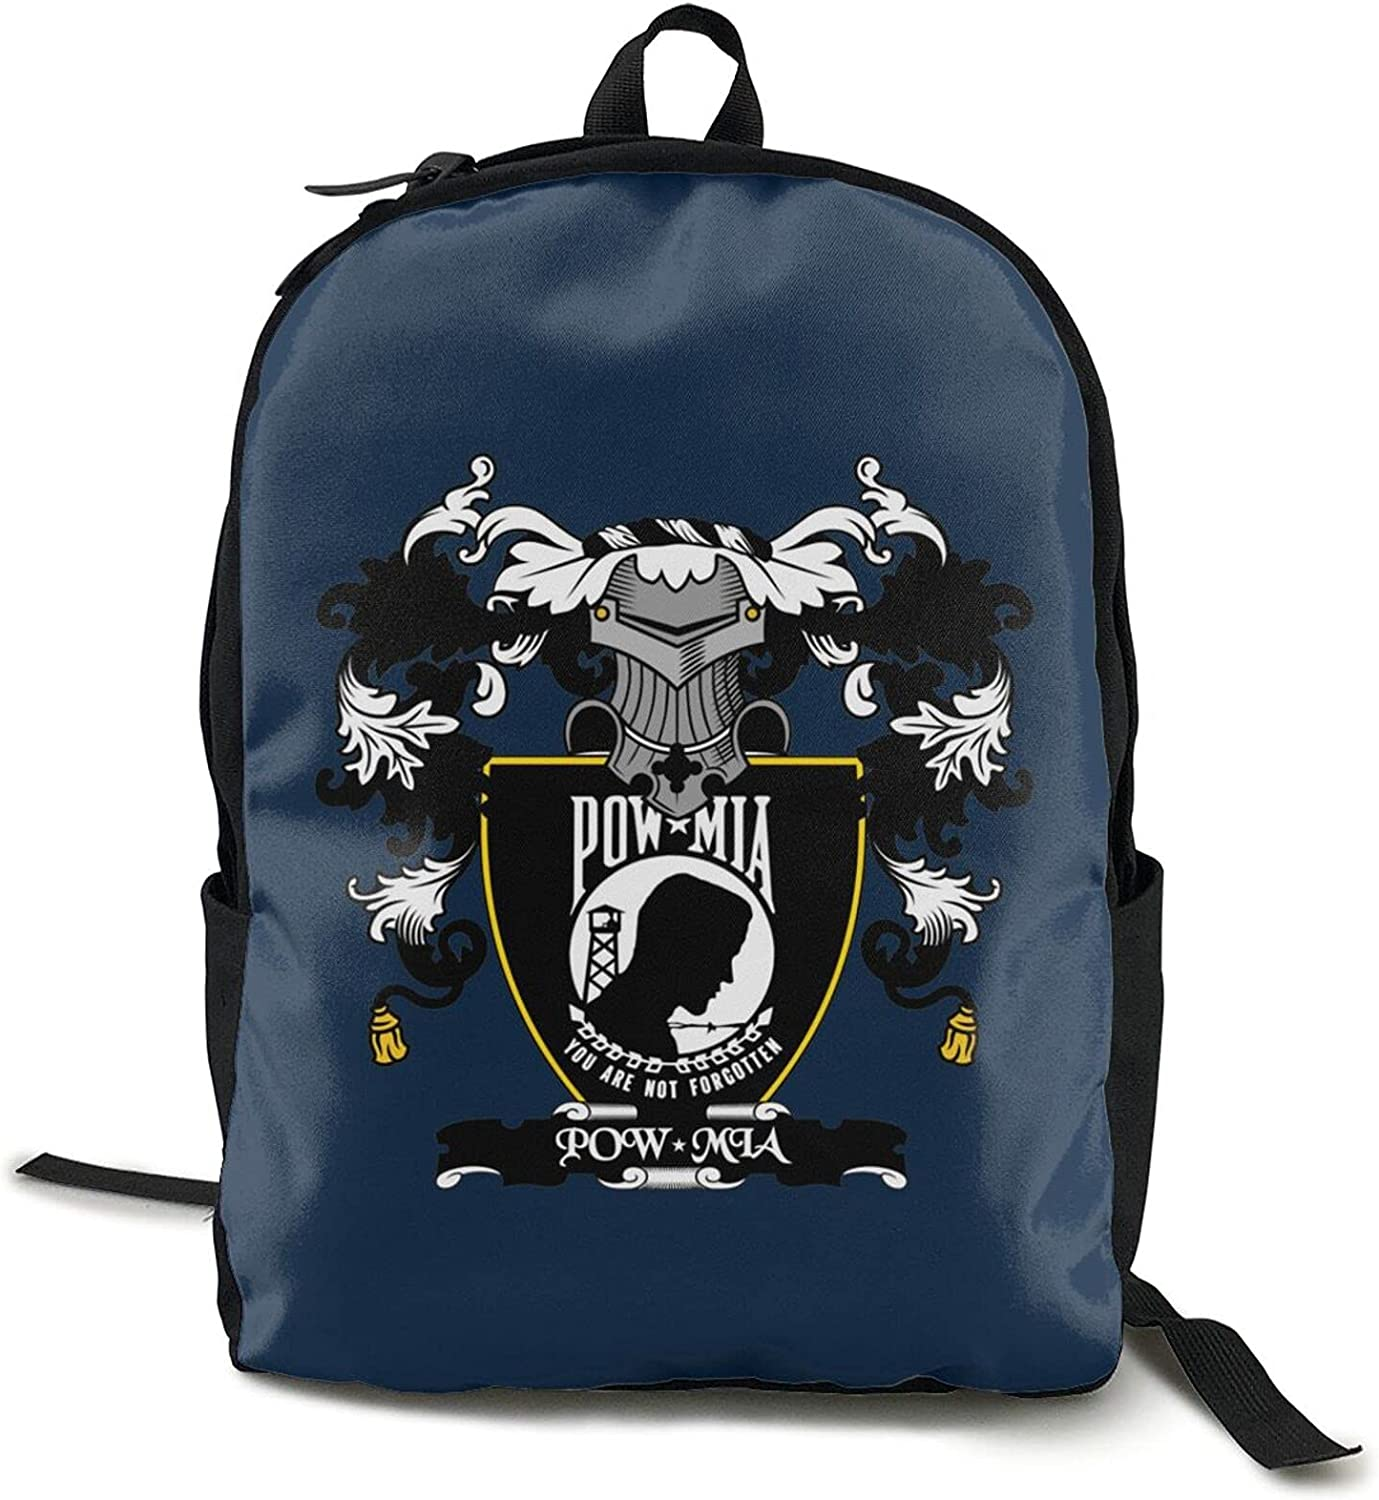 Pow Houston Mall Mia Flag You Are Not Backp Unisex Forgotten Fashion Backpack quality assurance